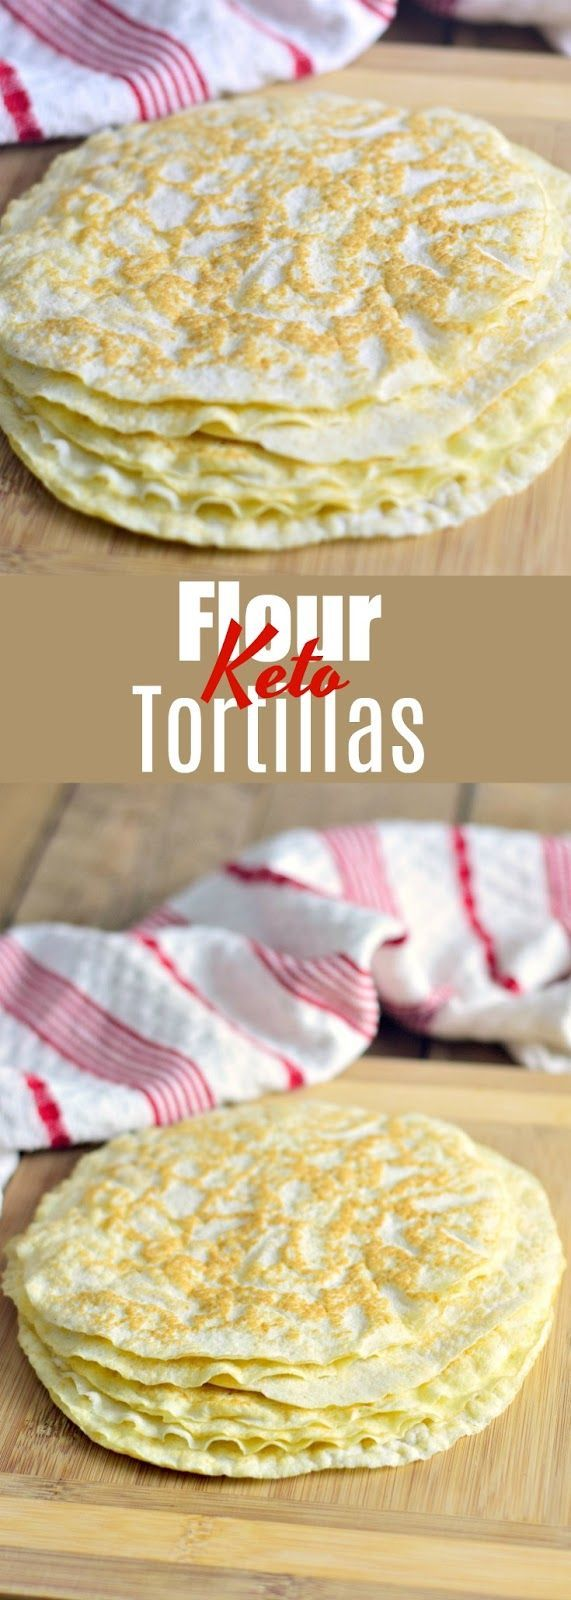 Now you can indulge in your favorite Mexican food dishes with this Keto Flour Tortilla recipe. Tacos, fajitas, enchiladas, and more are waiting for yo...